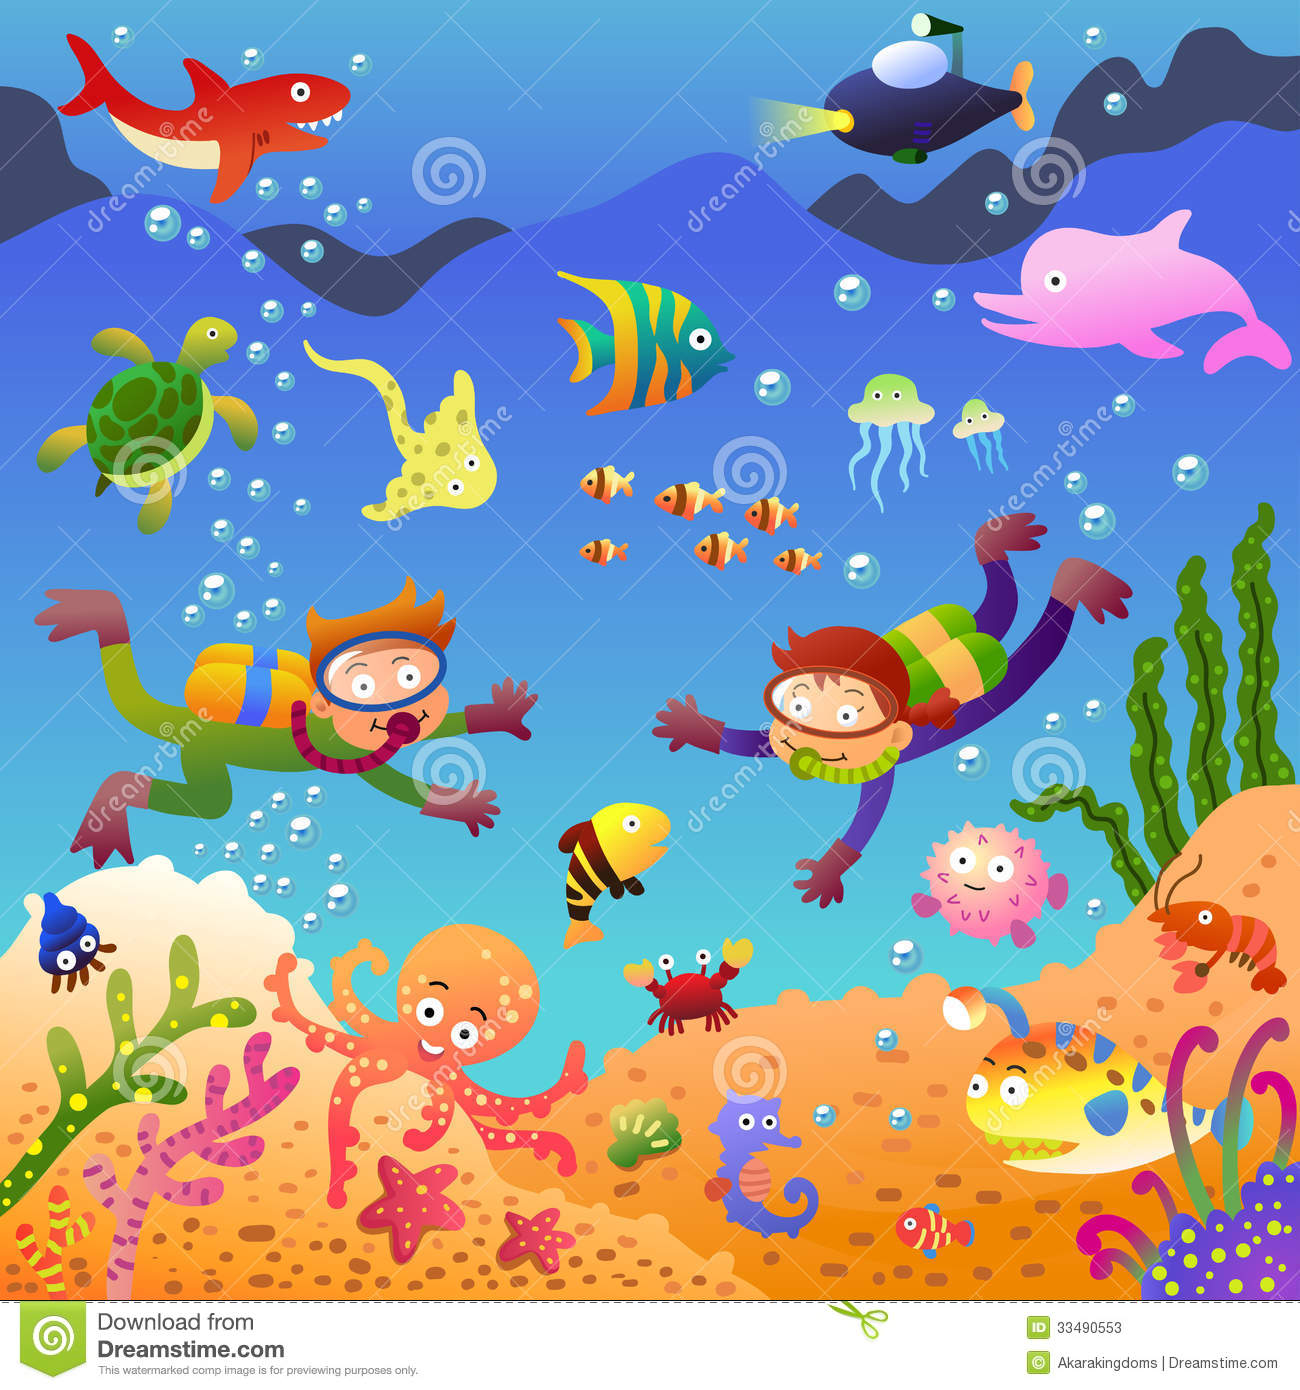 Clip Art Under The Sea Clip Art under the sea fish clipart kid eps10 file simple gradients no effects mesh no